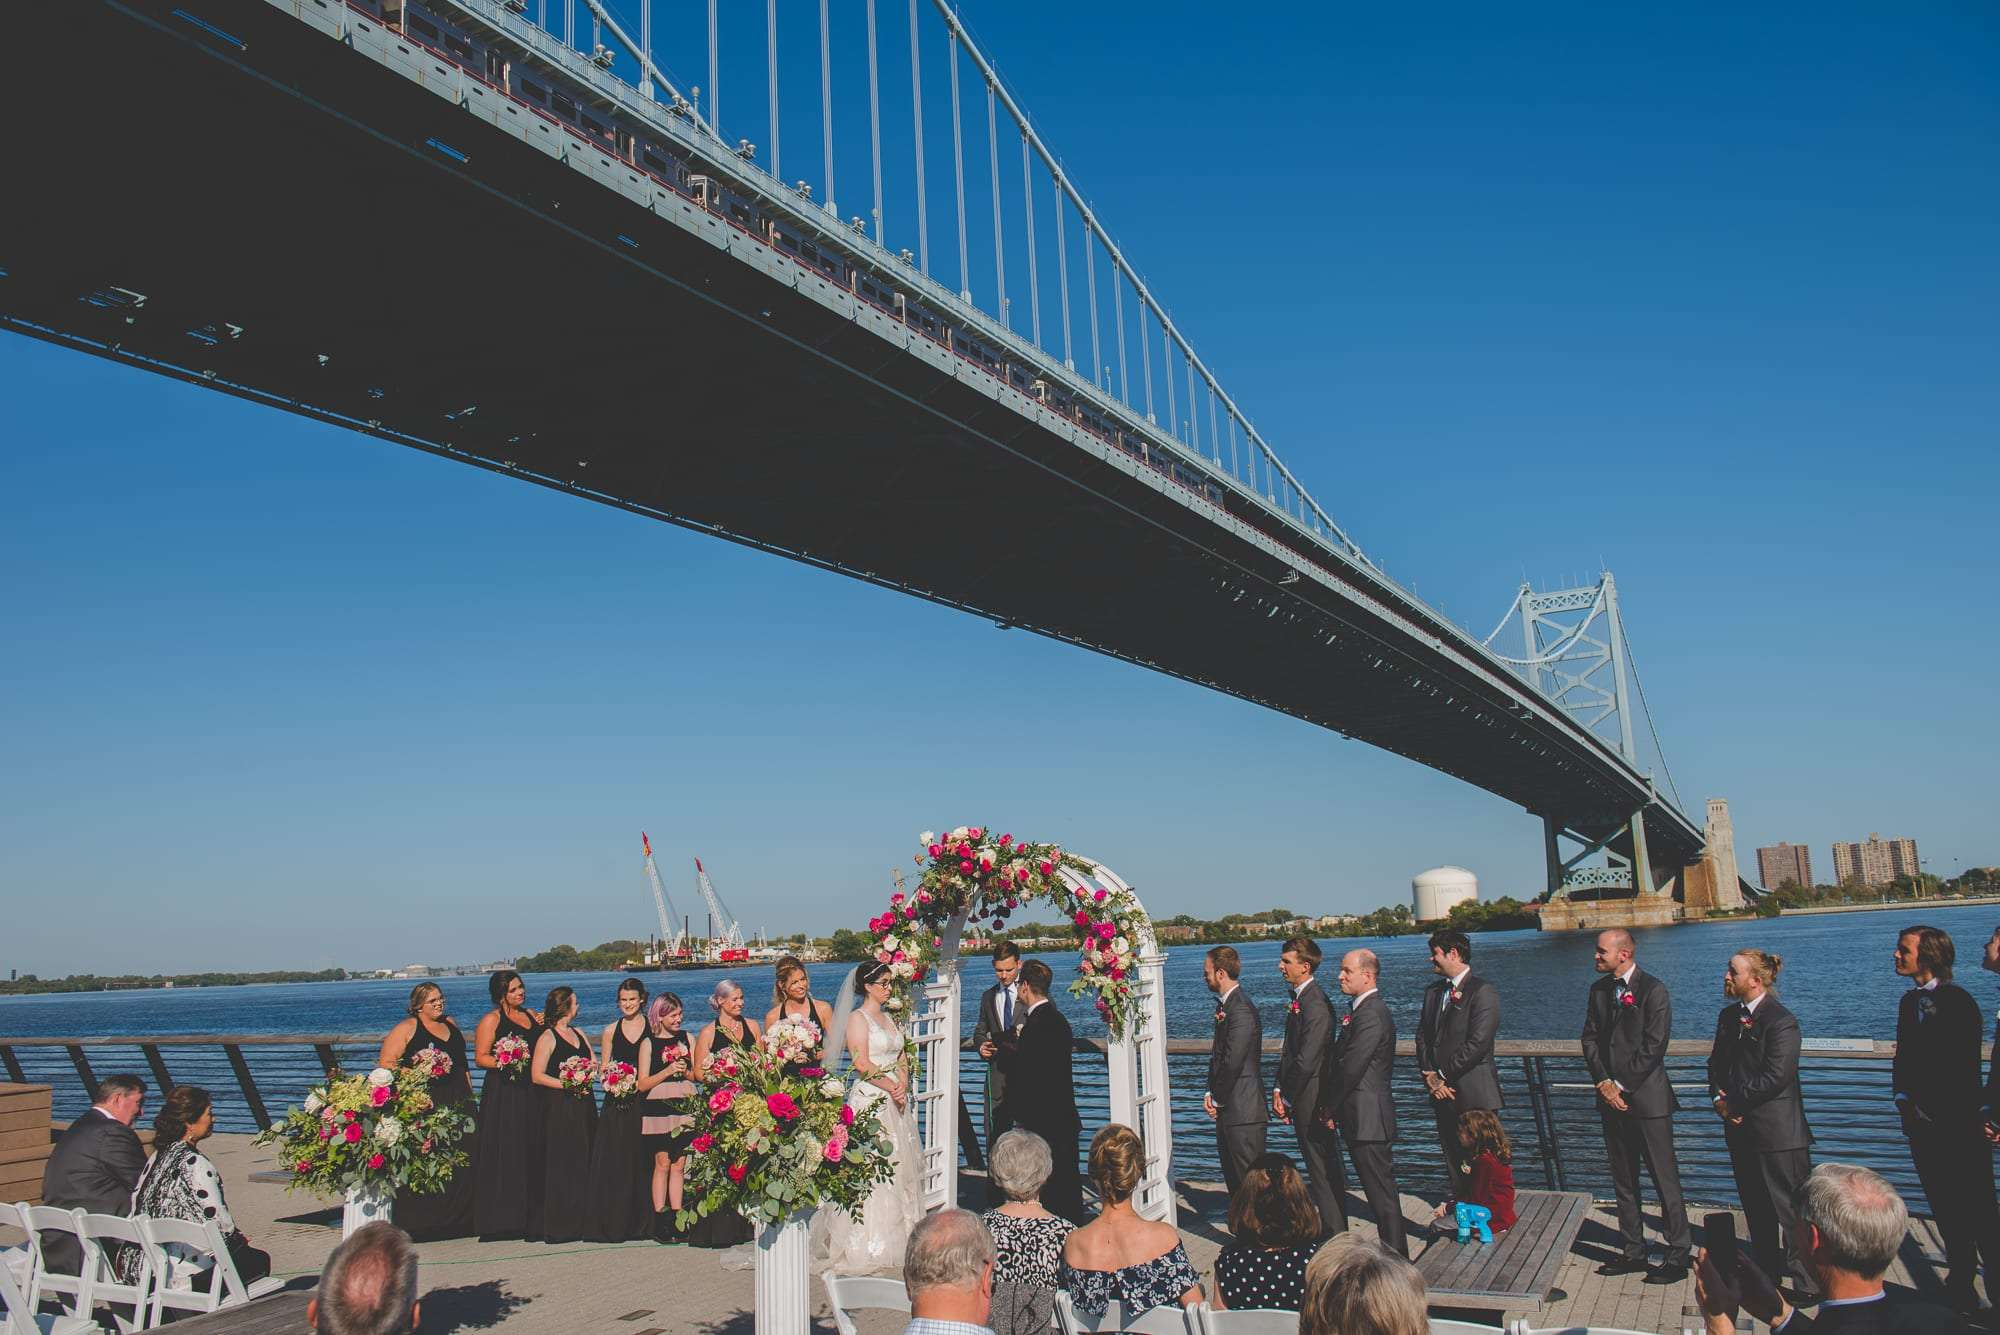 Amazing wedding views in Philadelphia race street pier